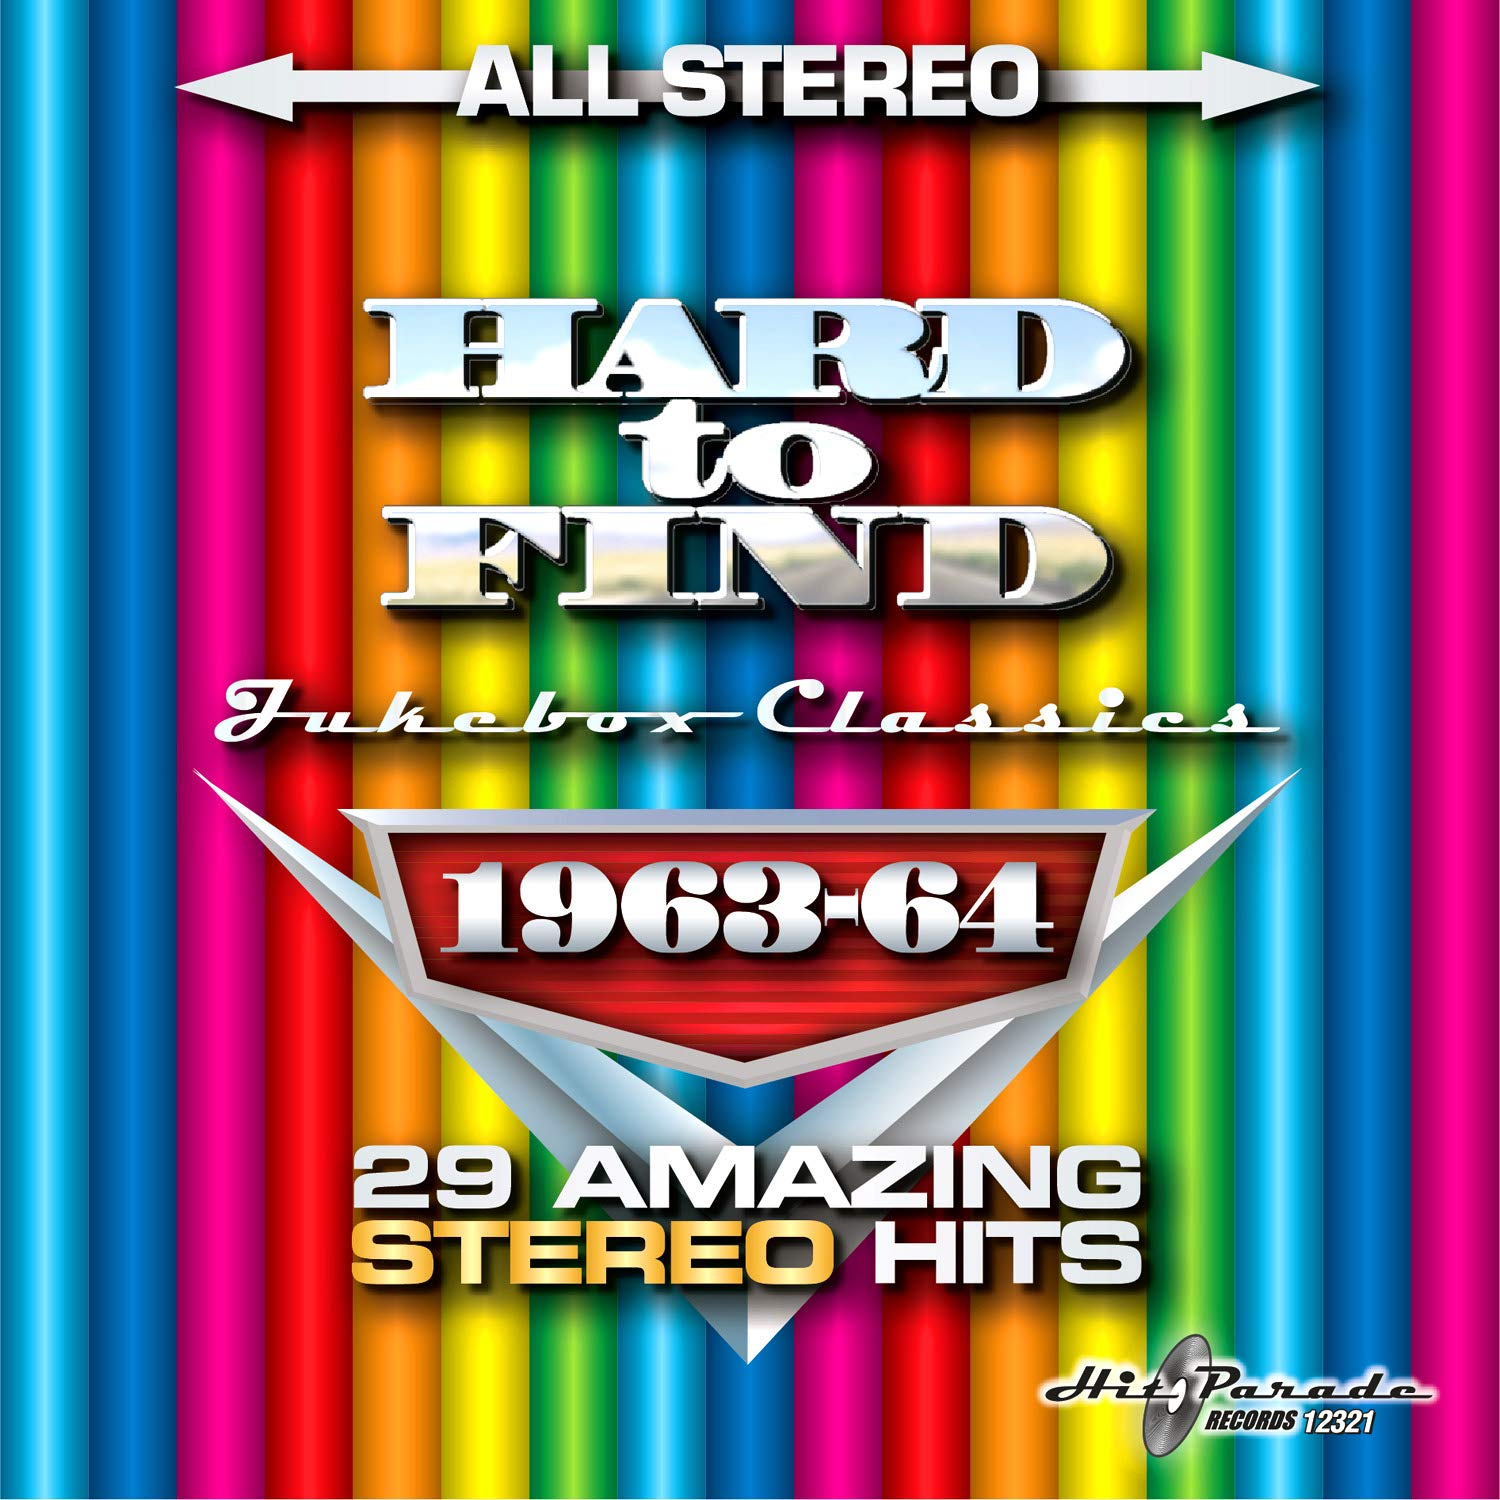 Hard To Find Jukebox Classics 1963-64: 29 Stereo Hits by Hit Parade